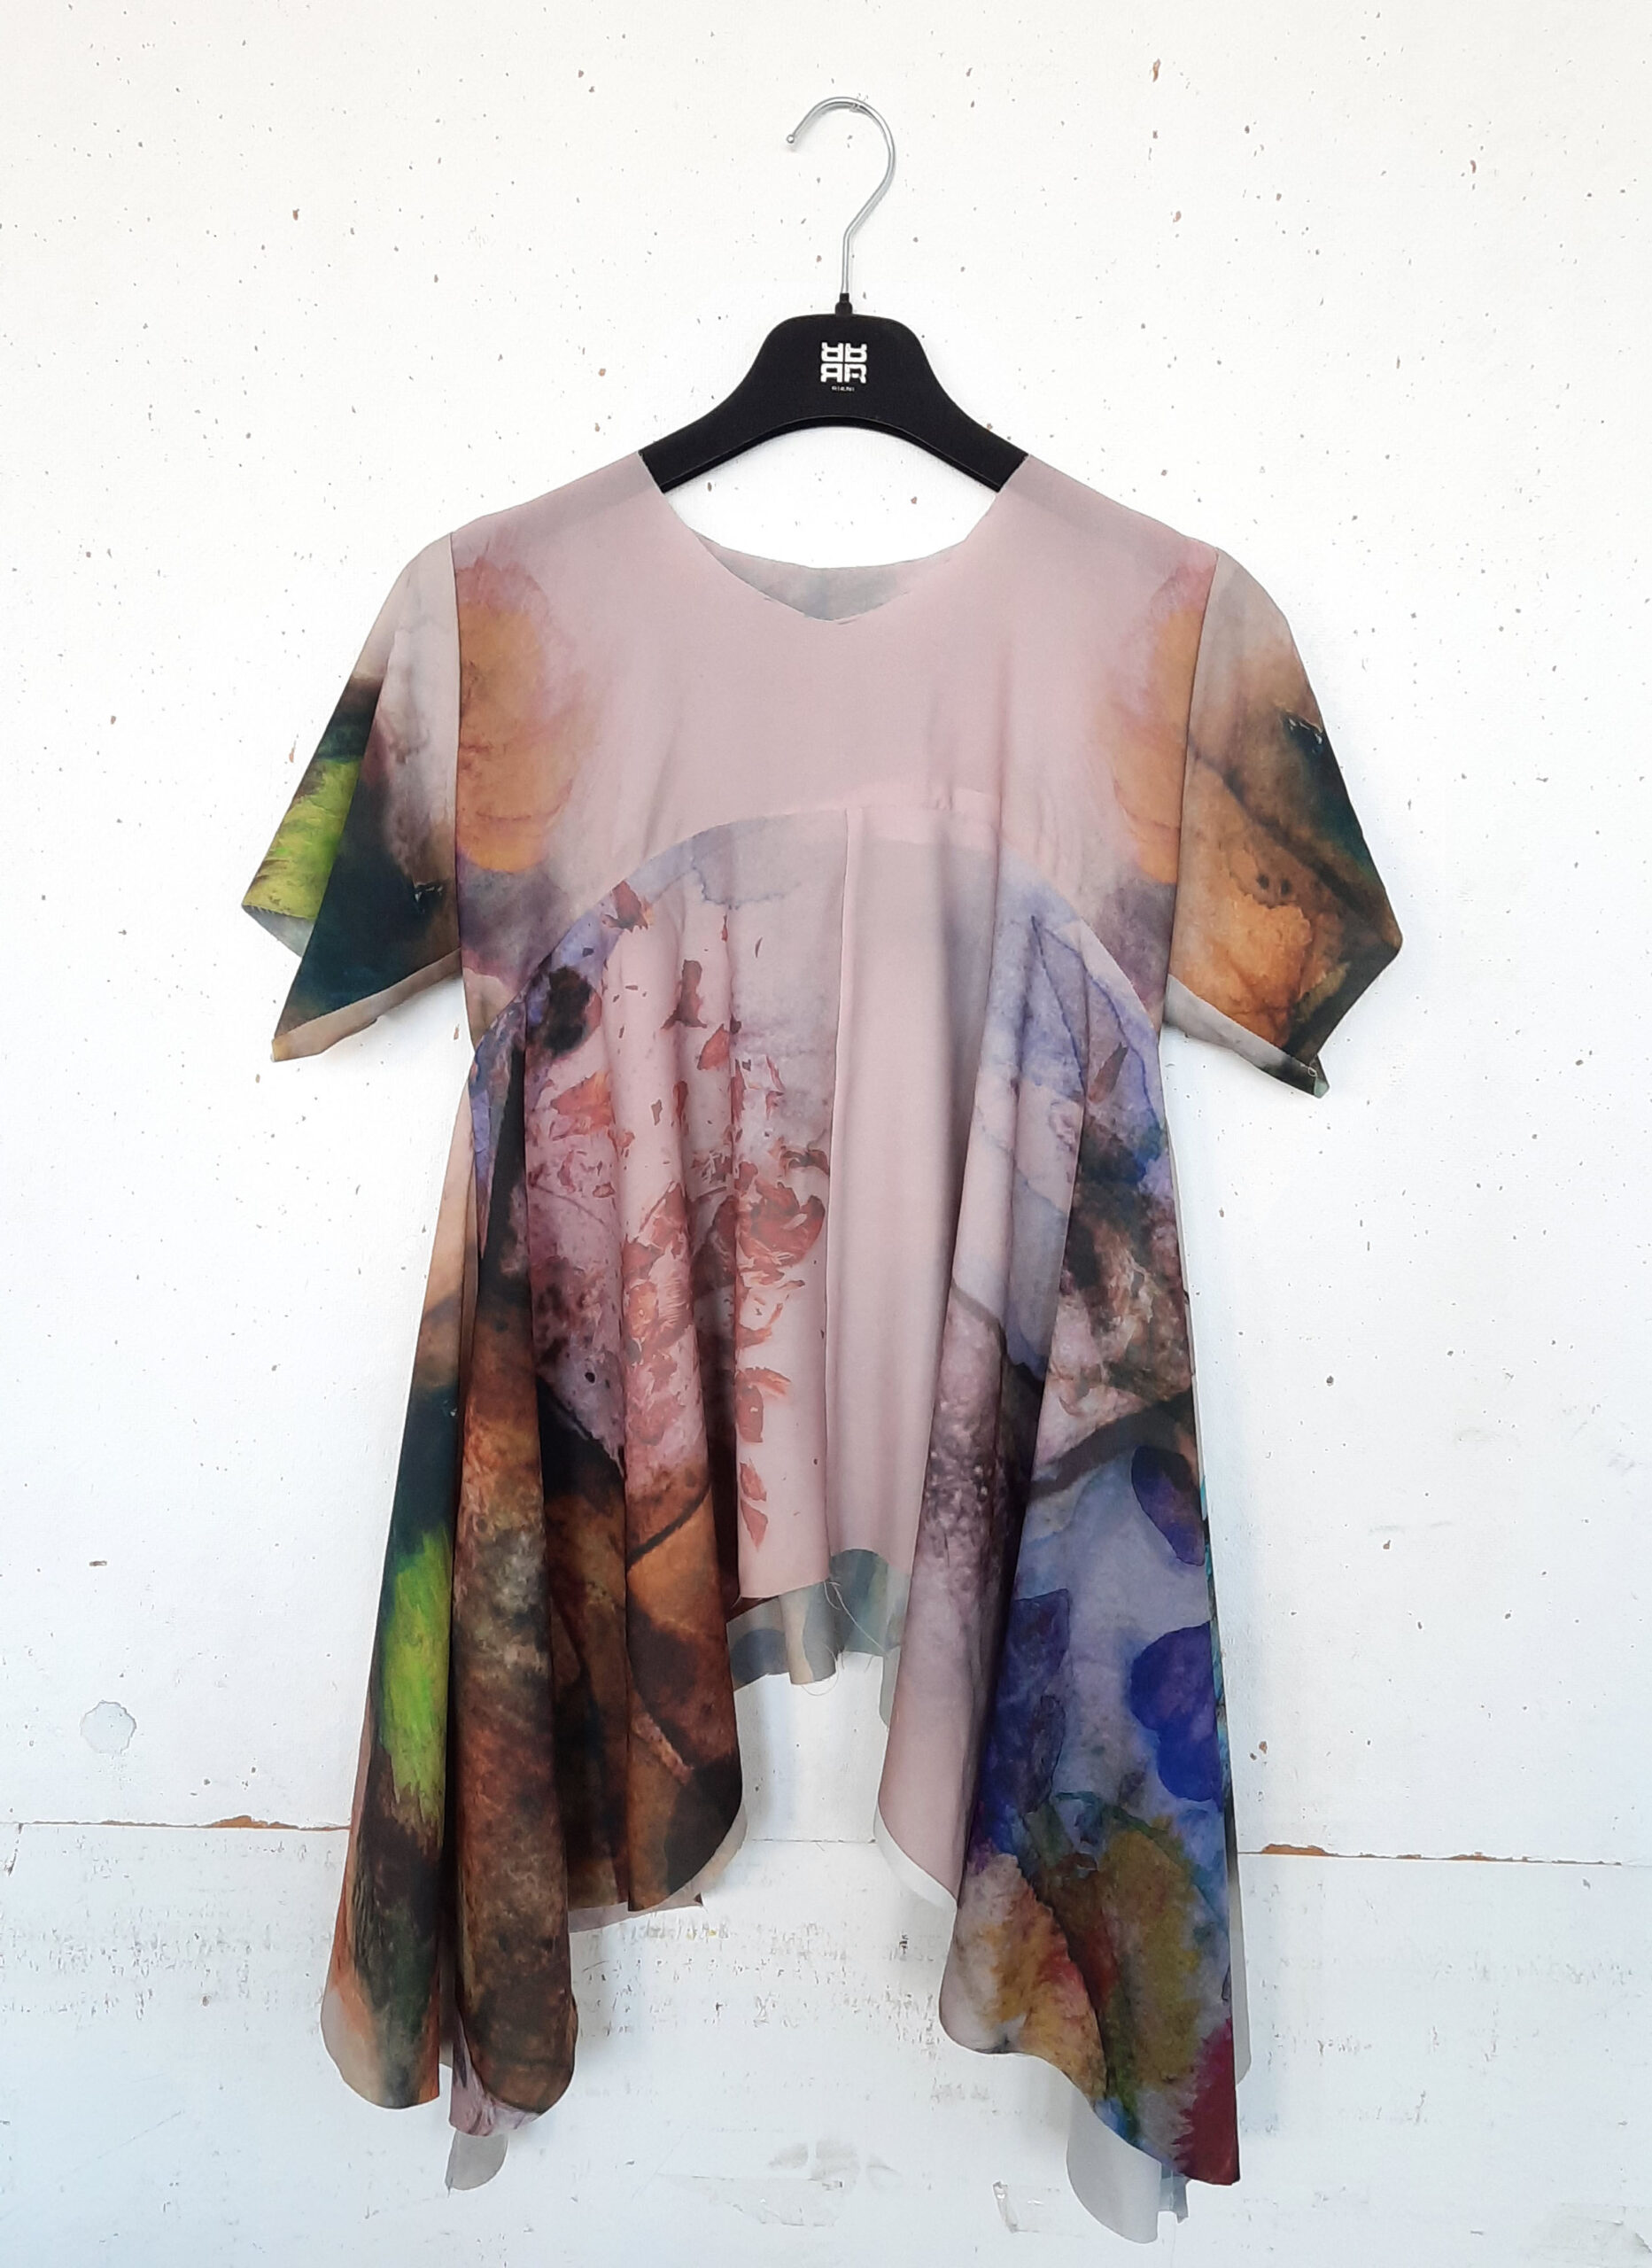 Flowy shirt with multicolor photos printed on it